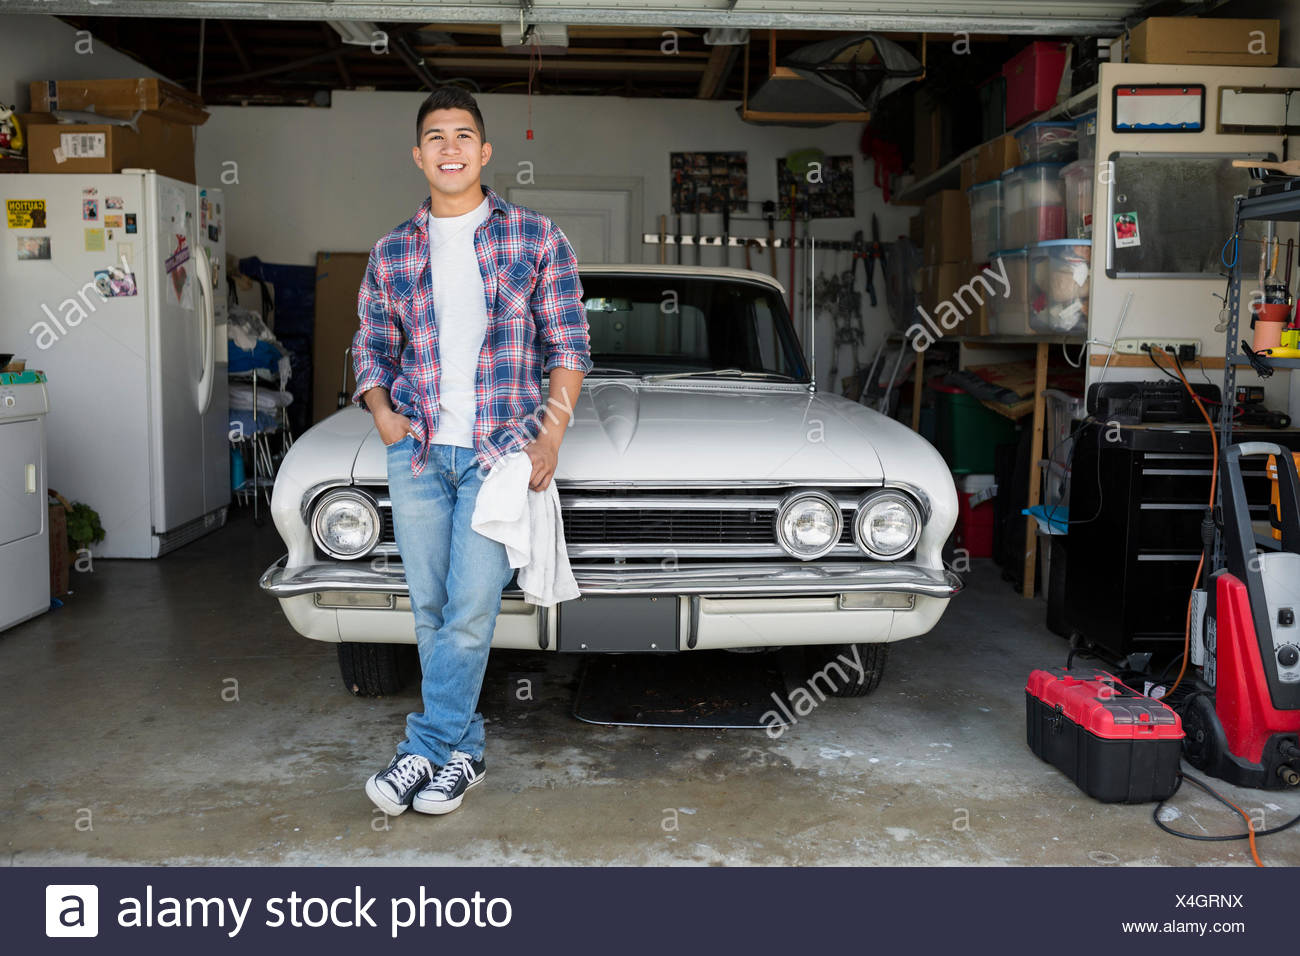 Portrait smiling young man with vintage car garage - Stock Image